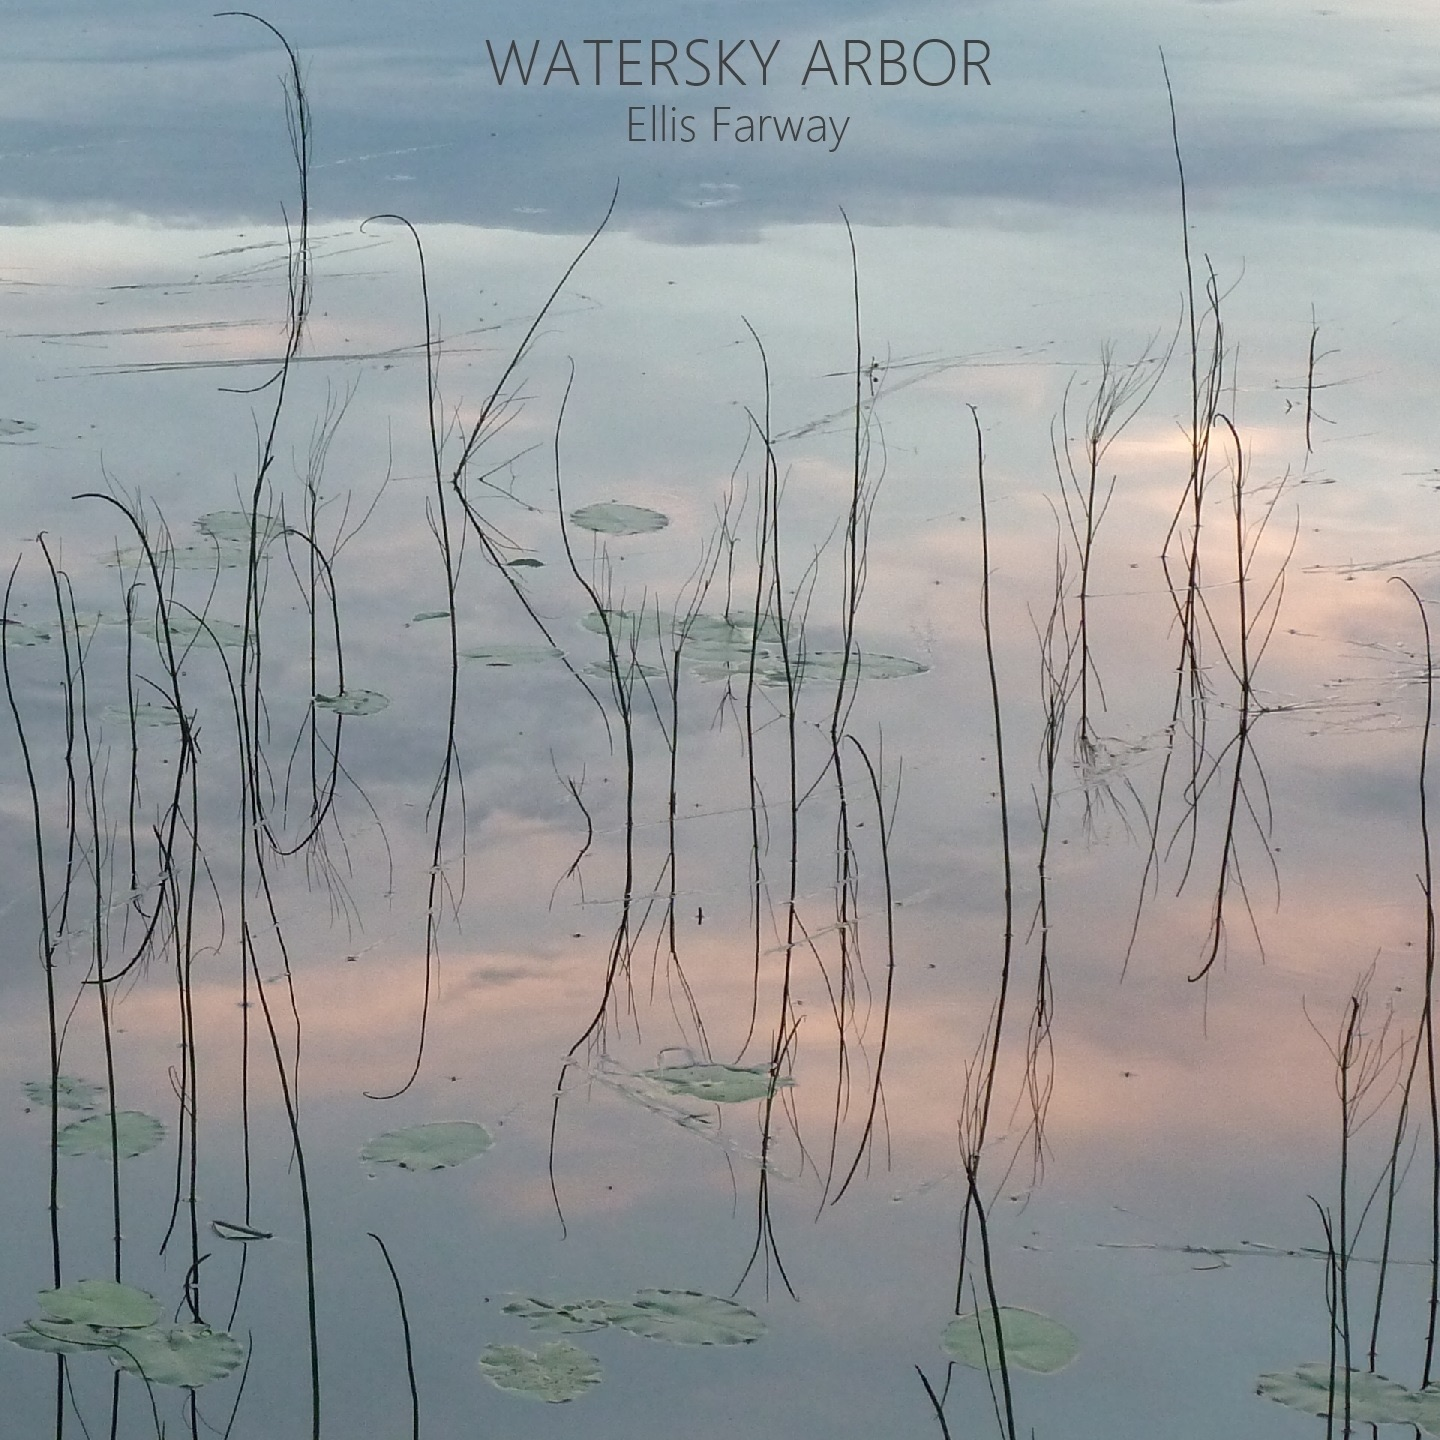 Watersky Arbor